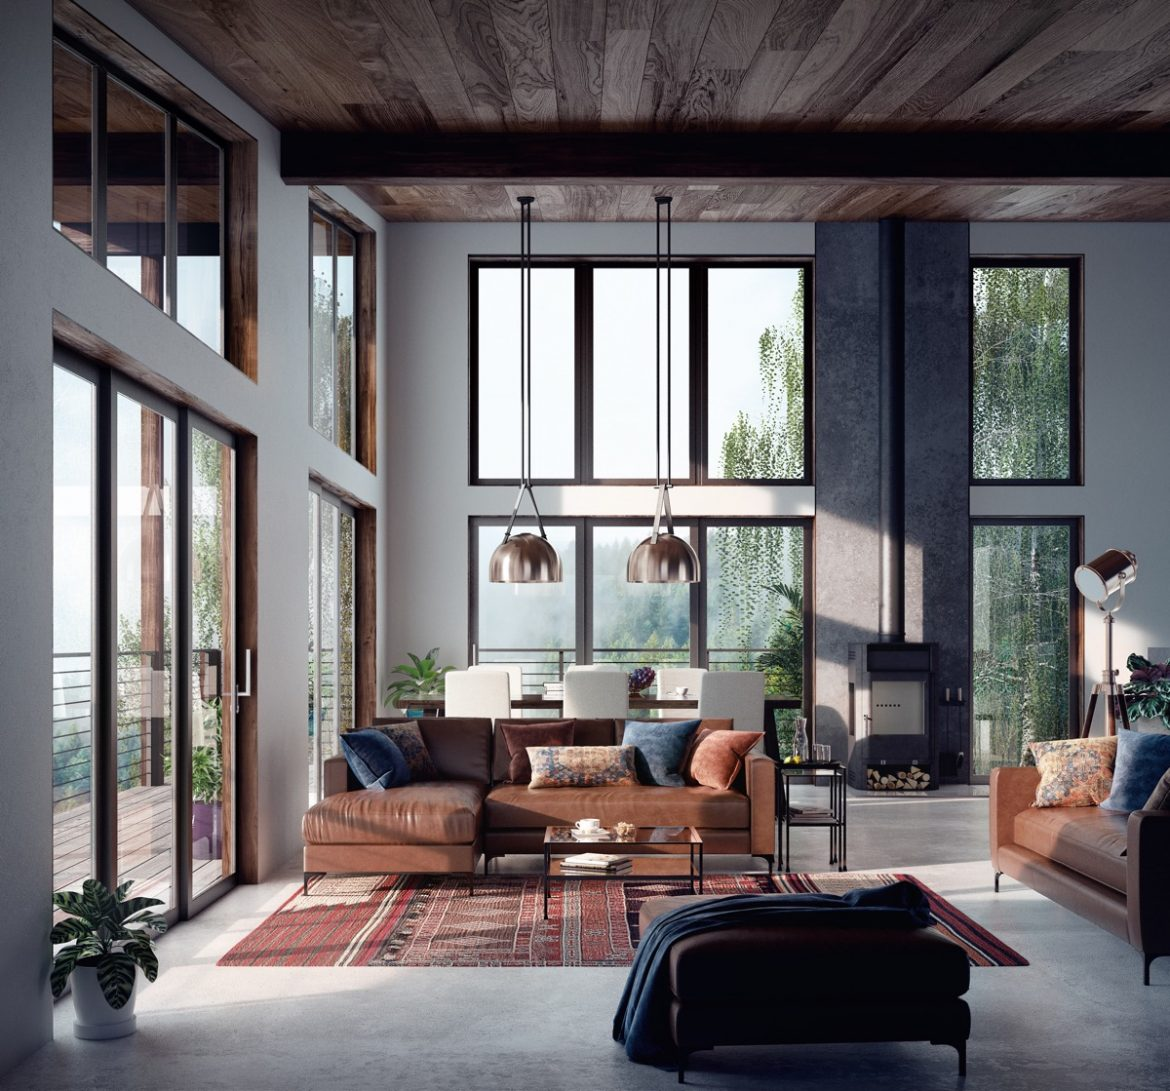 Beautiful-Living-Room-With-Leather-Couch-And-Rustic-Decor-Open-Concept-Large-Windows